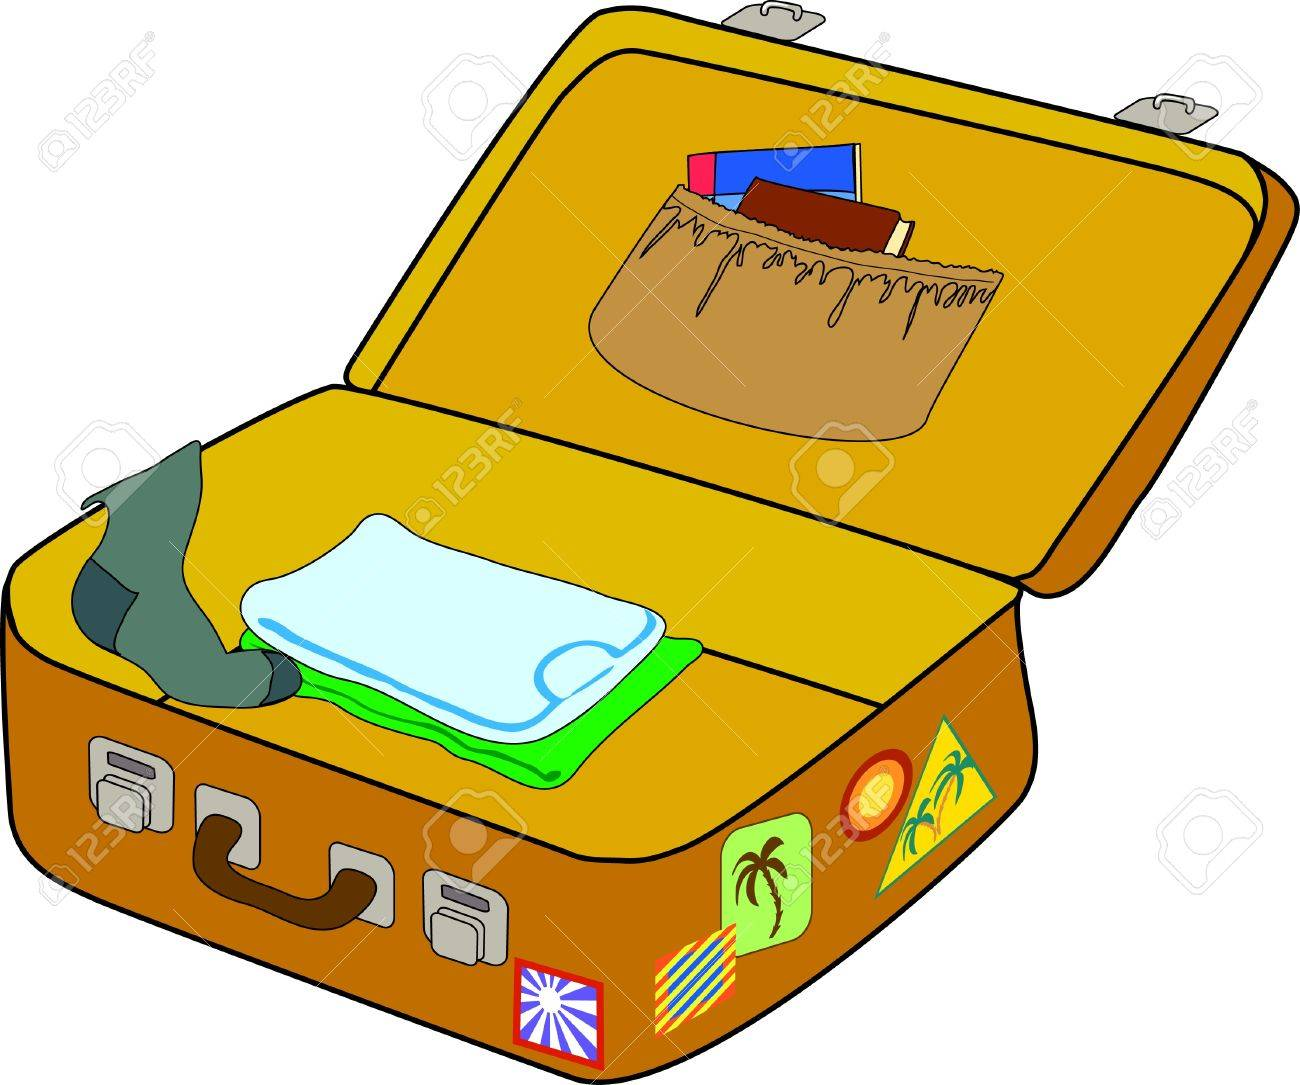 open suitcase drawing at getdrawings com free for personal use rh getdrawings com open suitcase clipart